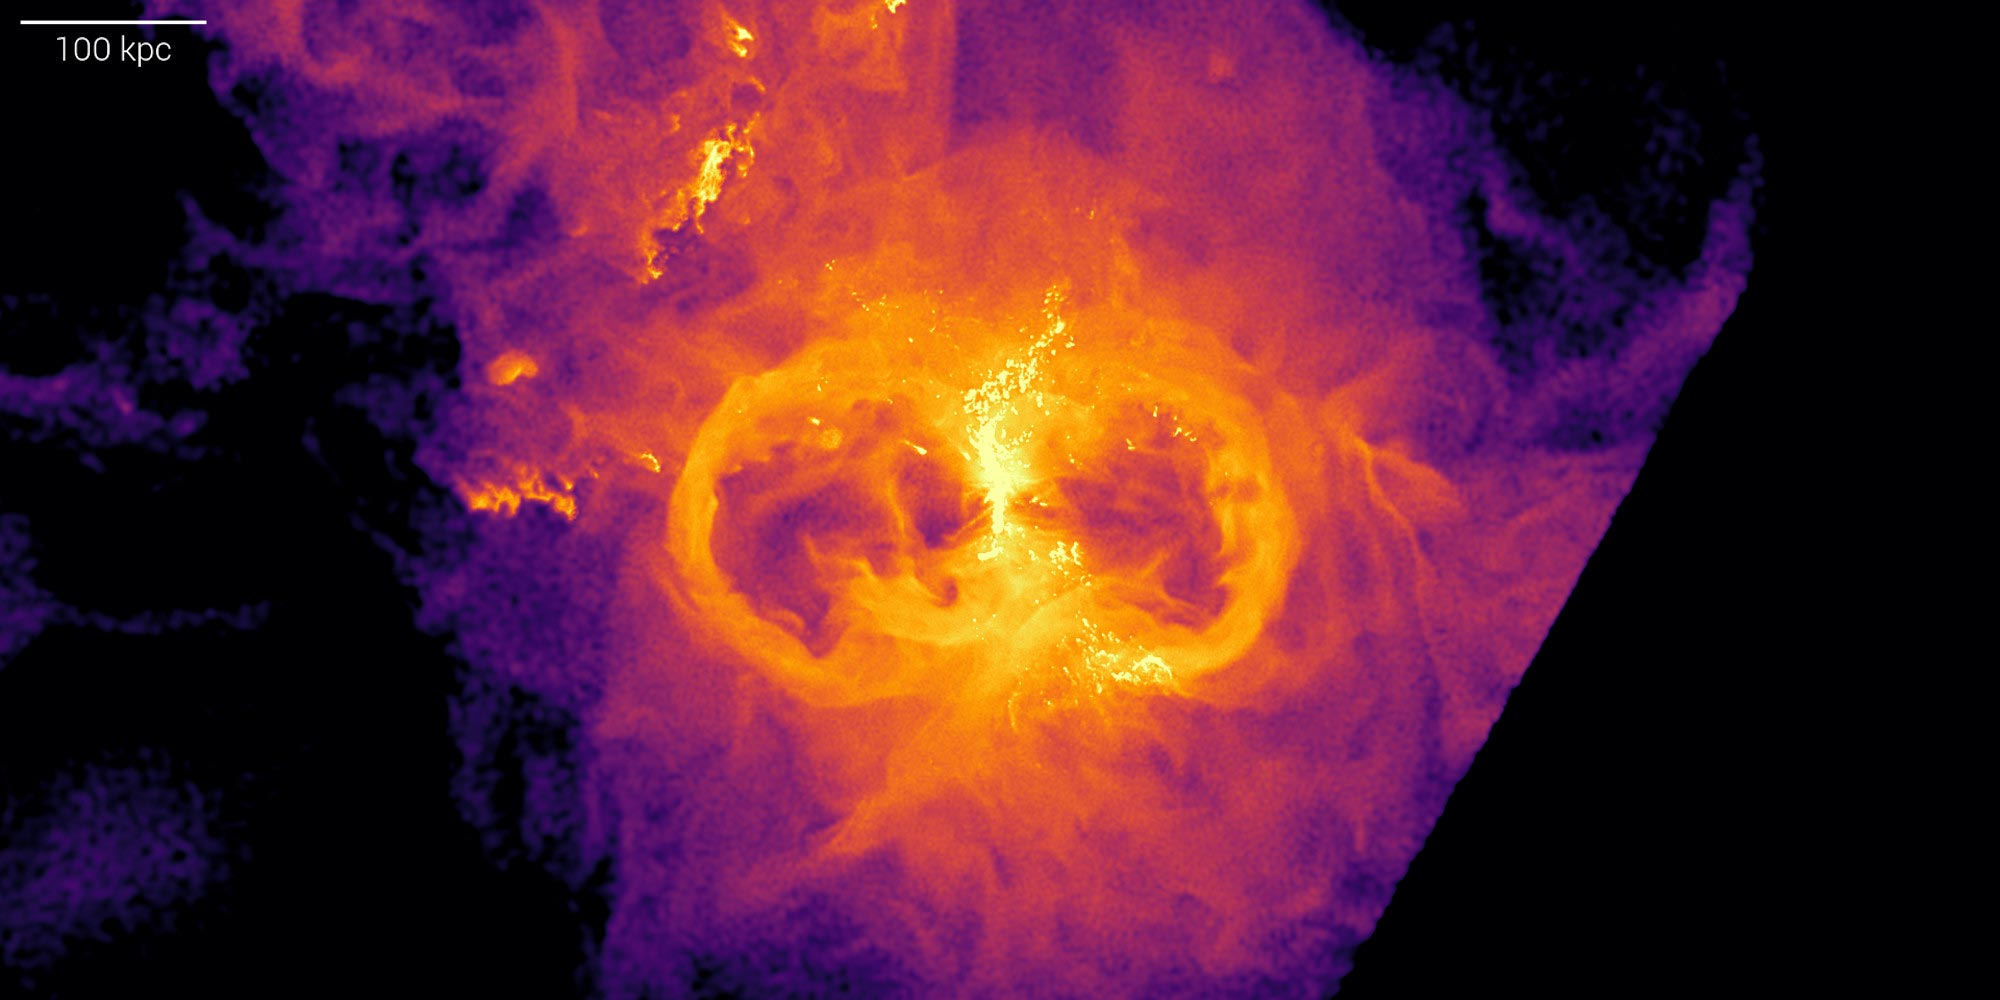 Cosmic Mass Monsters Clear the Way: Black Holes Help With Star Birth